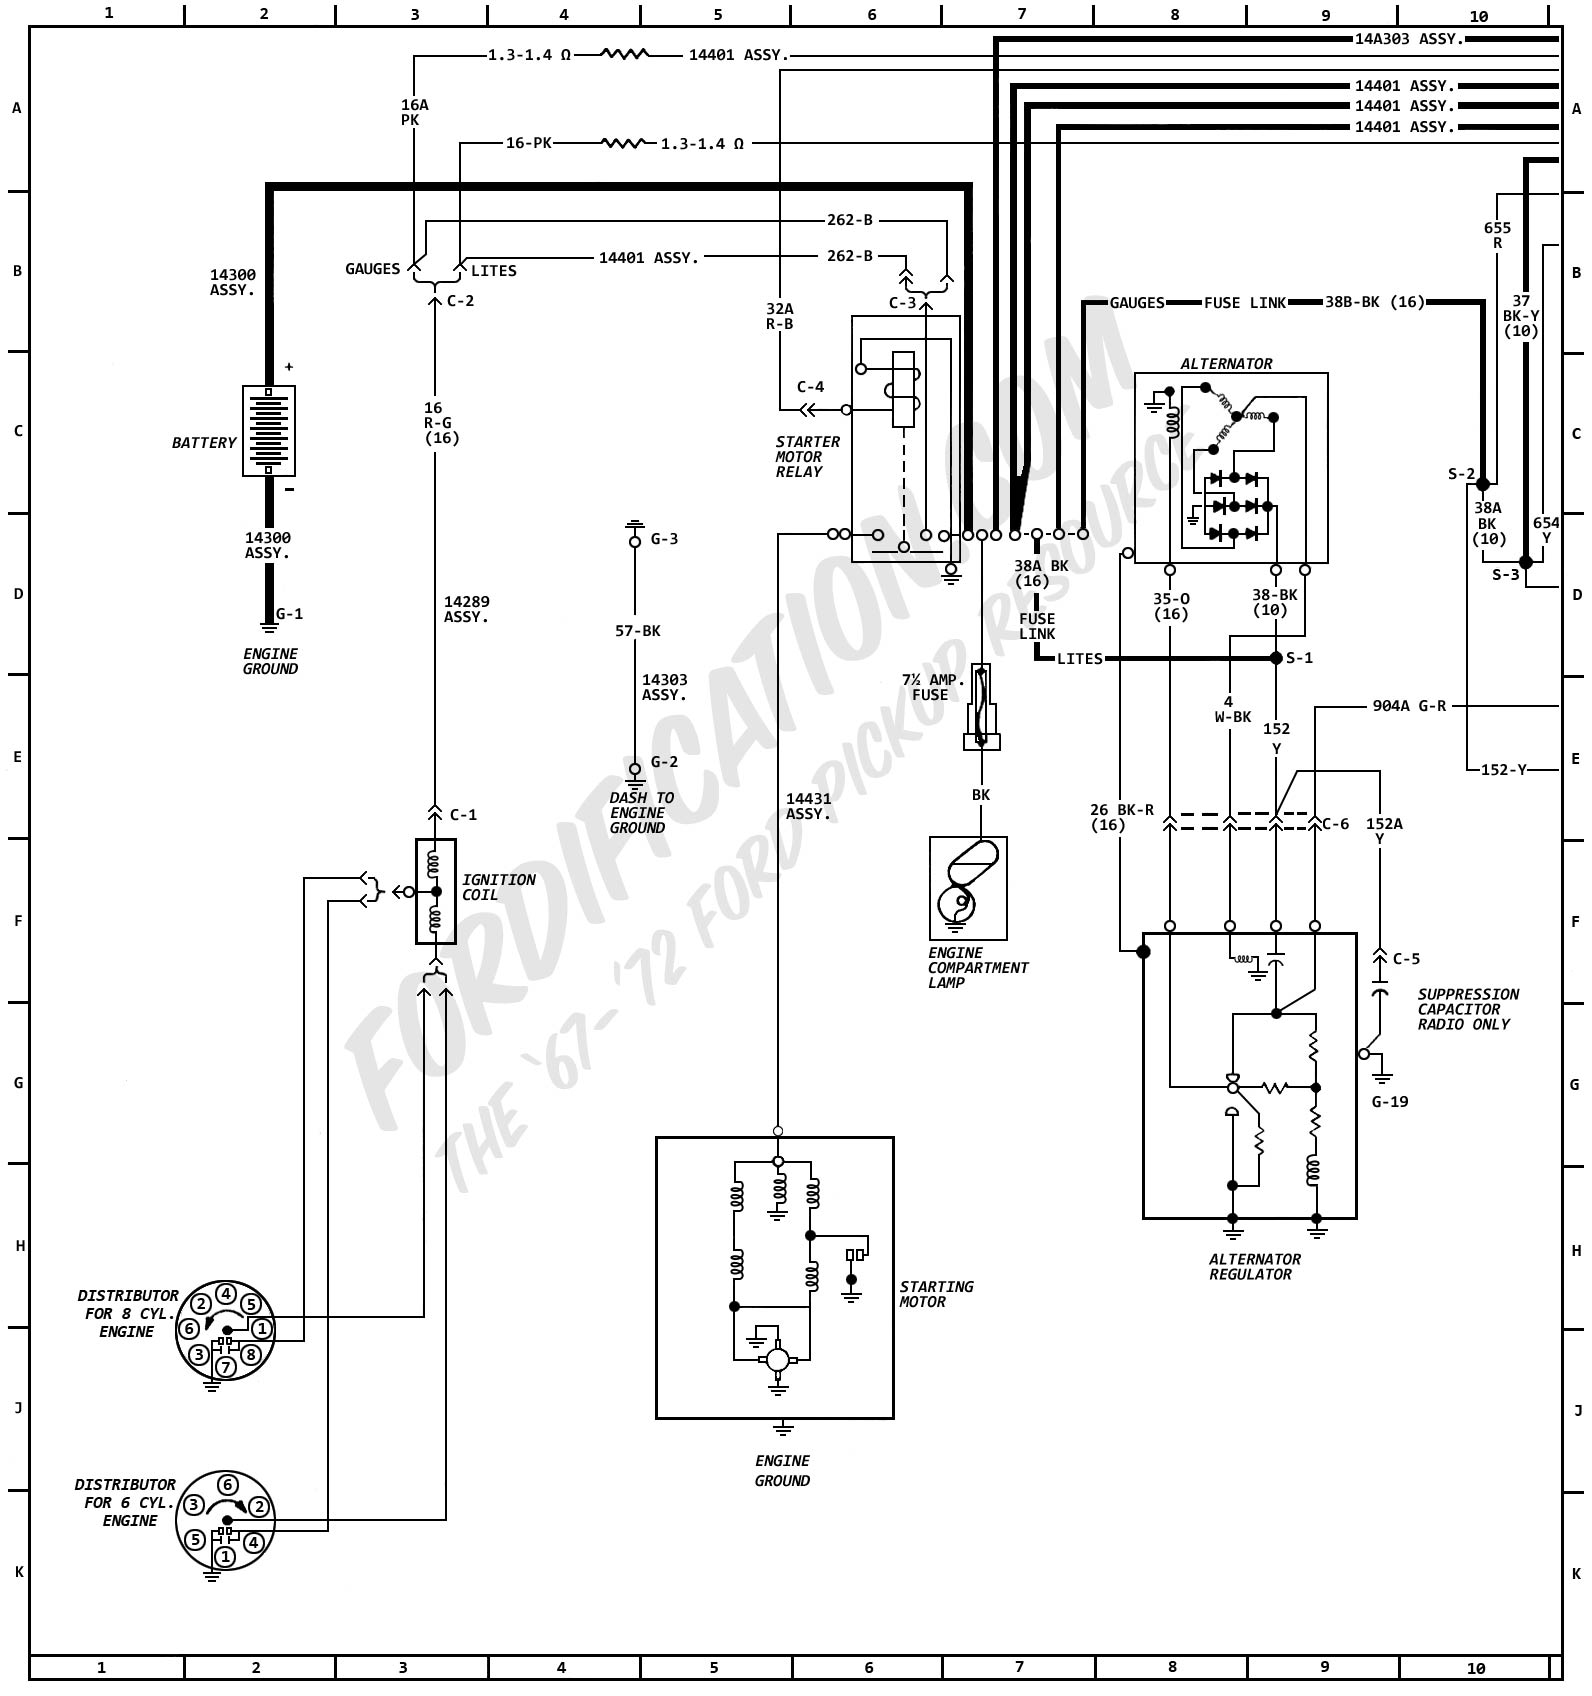 1971 Ford F100 Wiring Diagram Portal Wtw5640xw2 Whirlpool Schematic 1972 Truck Diagrams Fordification Com Rh Fuel Sender Ignition